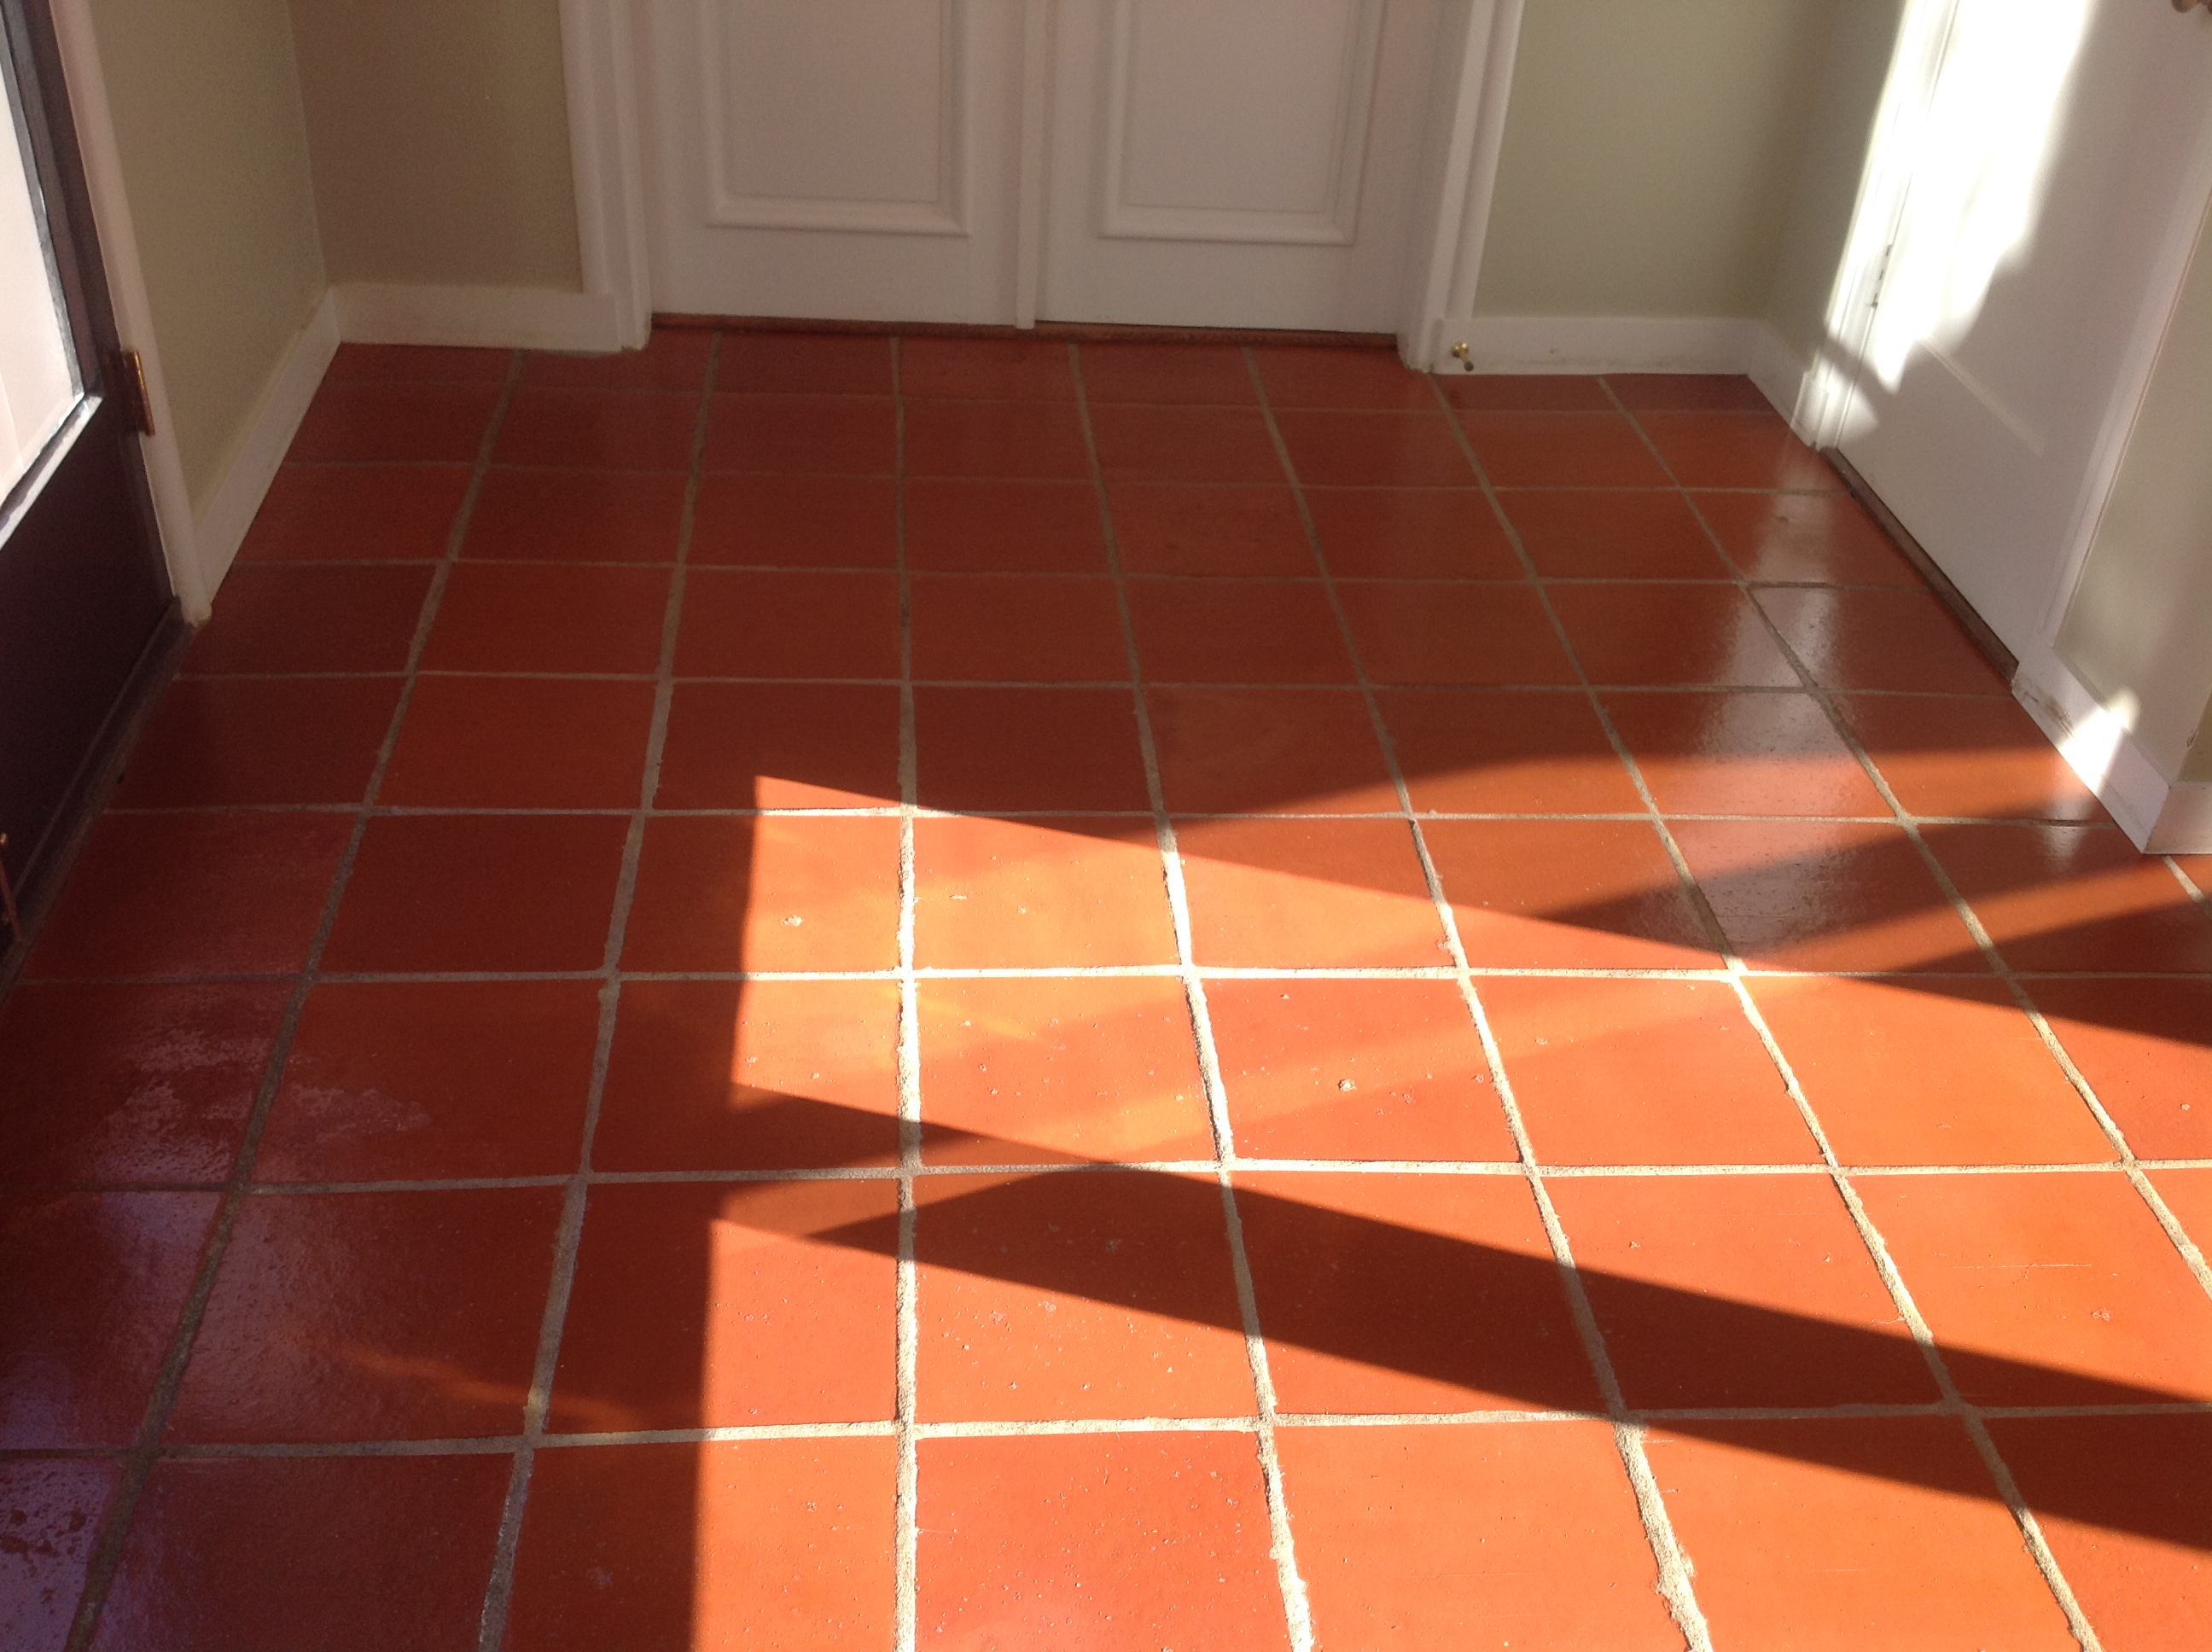 Floor tile wax